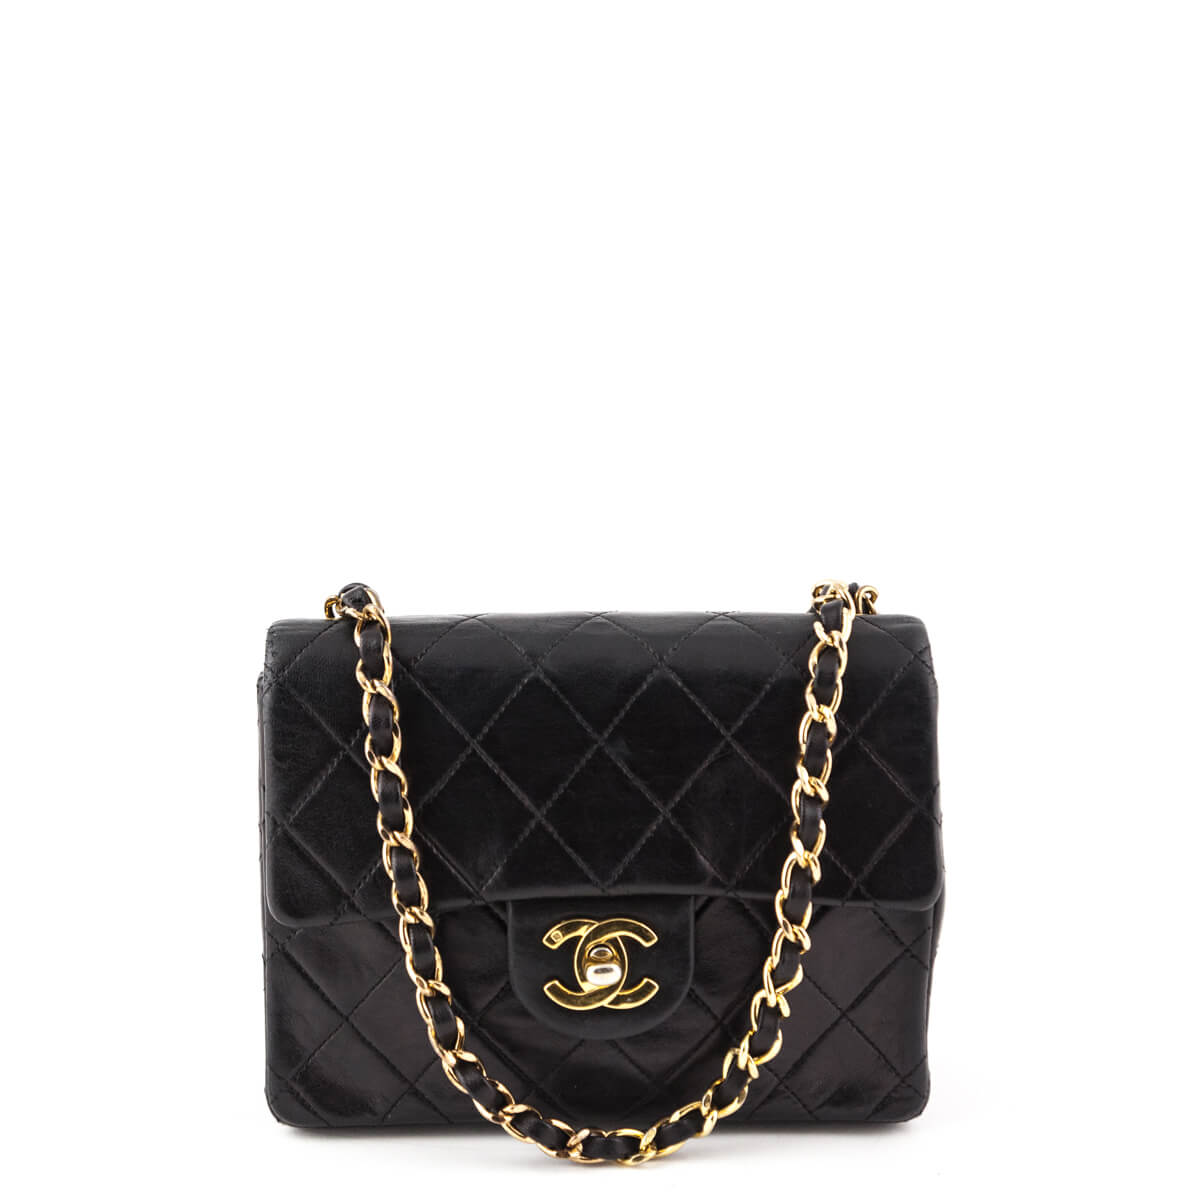 9b60082bc1b34e Chanel Black Lambskin Vintage Mini Square Flap bag - LOVE that BAG -  Preowned Authentic Designer ...